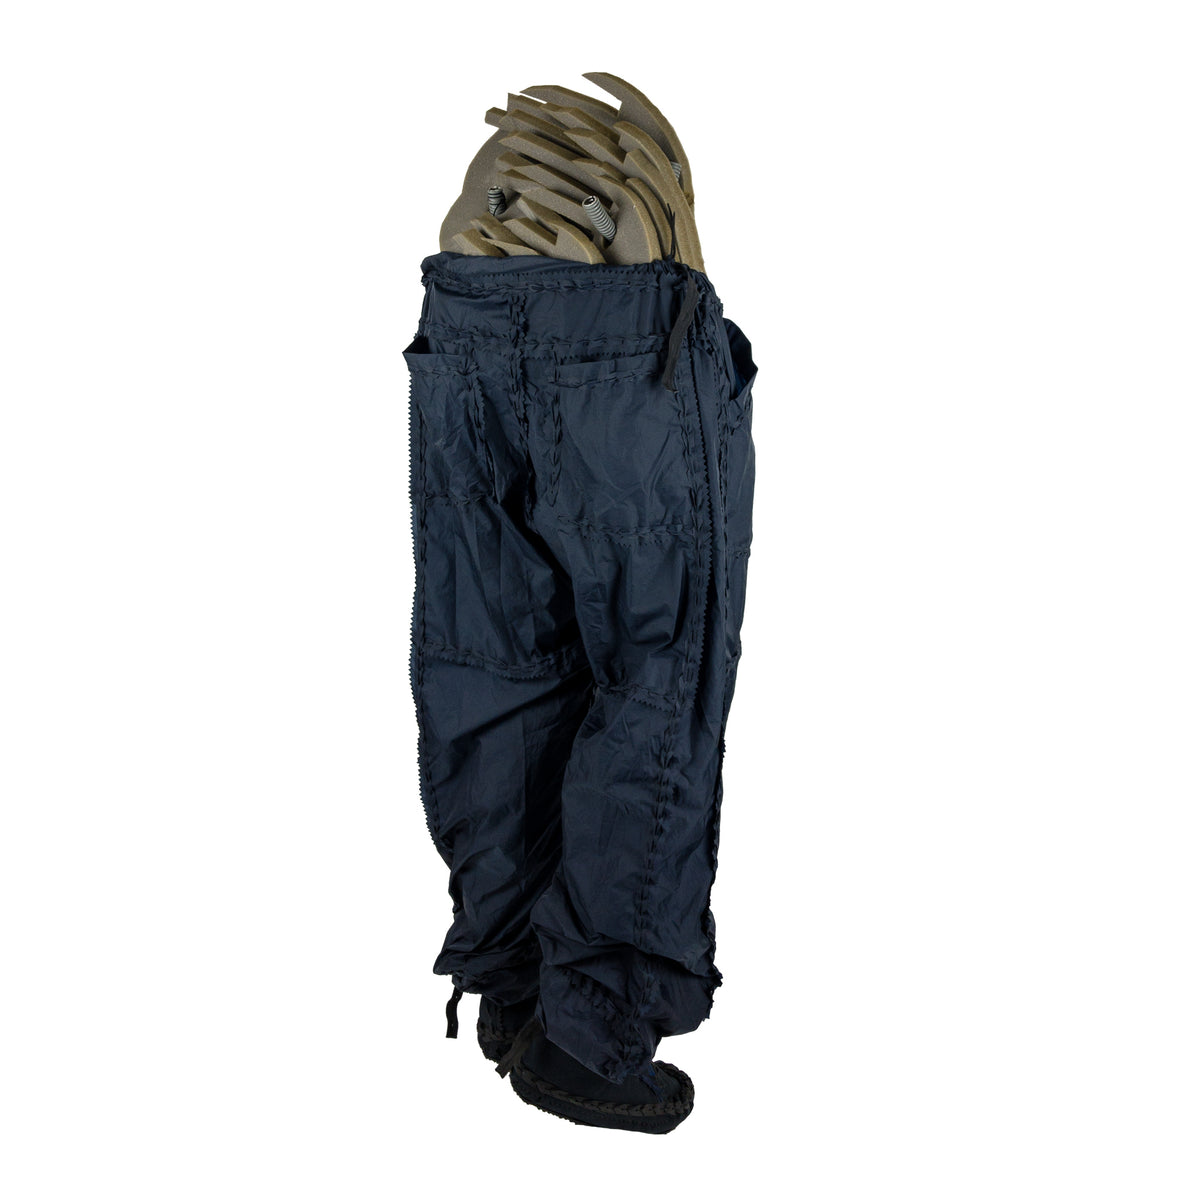 Self-Assembly Lightweight Trousers construction kit